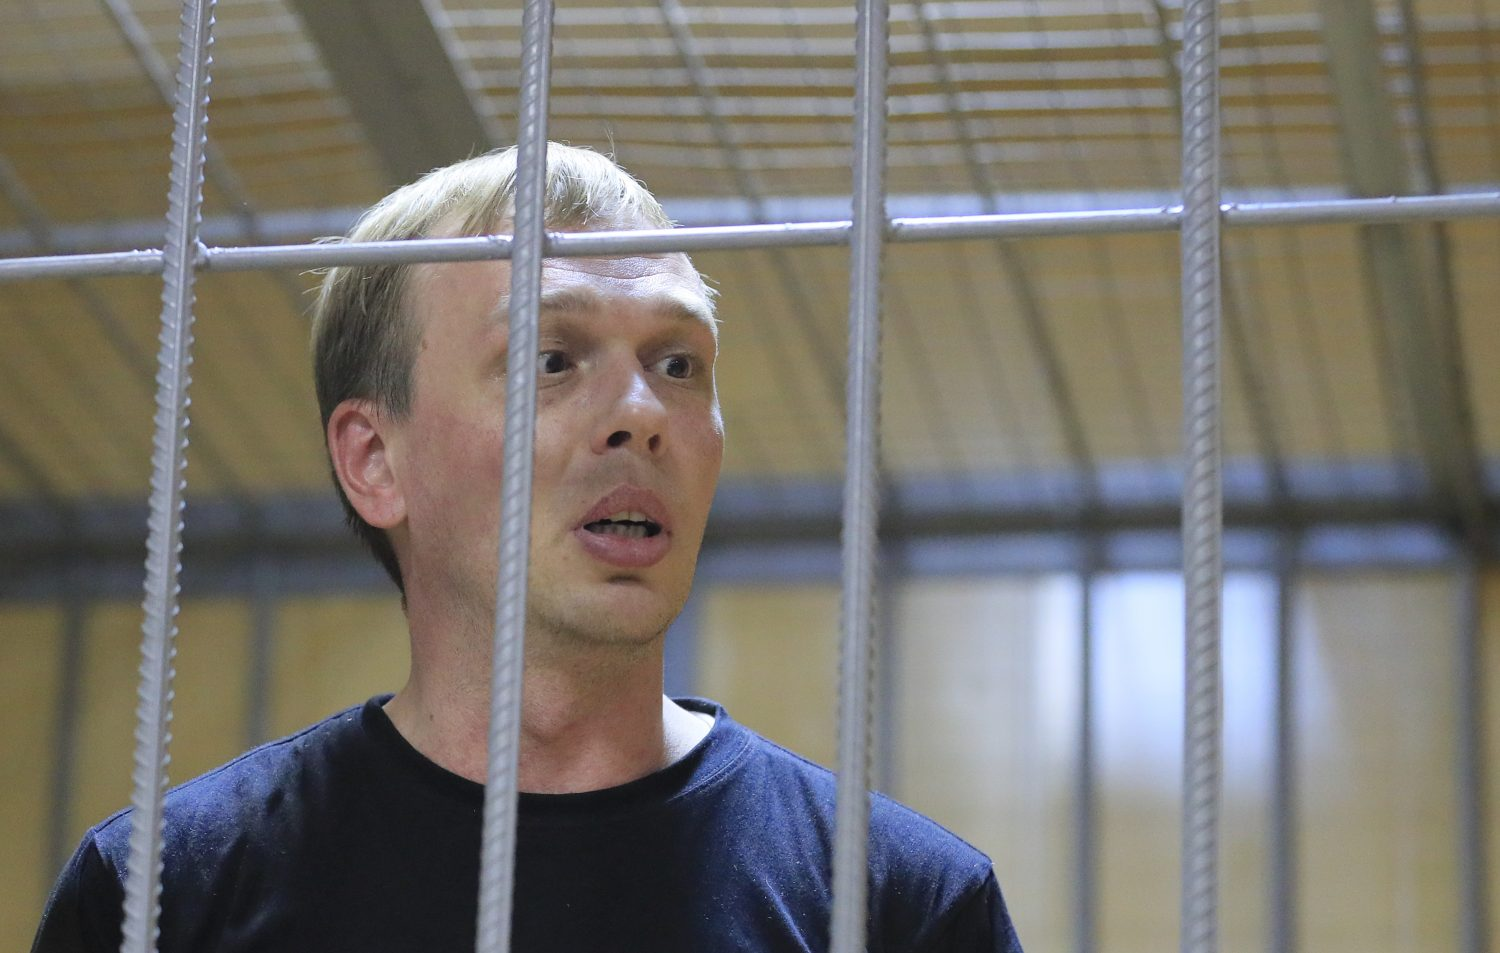 FILE PHOTO: Russian investigative journalist Ivan Golunov, who was detained by police and accused of drug offences, speaks inside a defendants' cage as he attends a court hearing in Moscow, Russia June 8, 2019. REUTERS/Tatyana Makeyeva